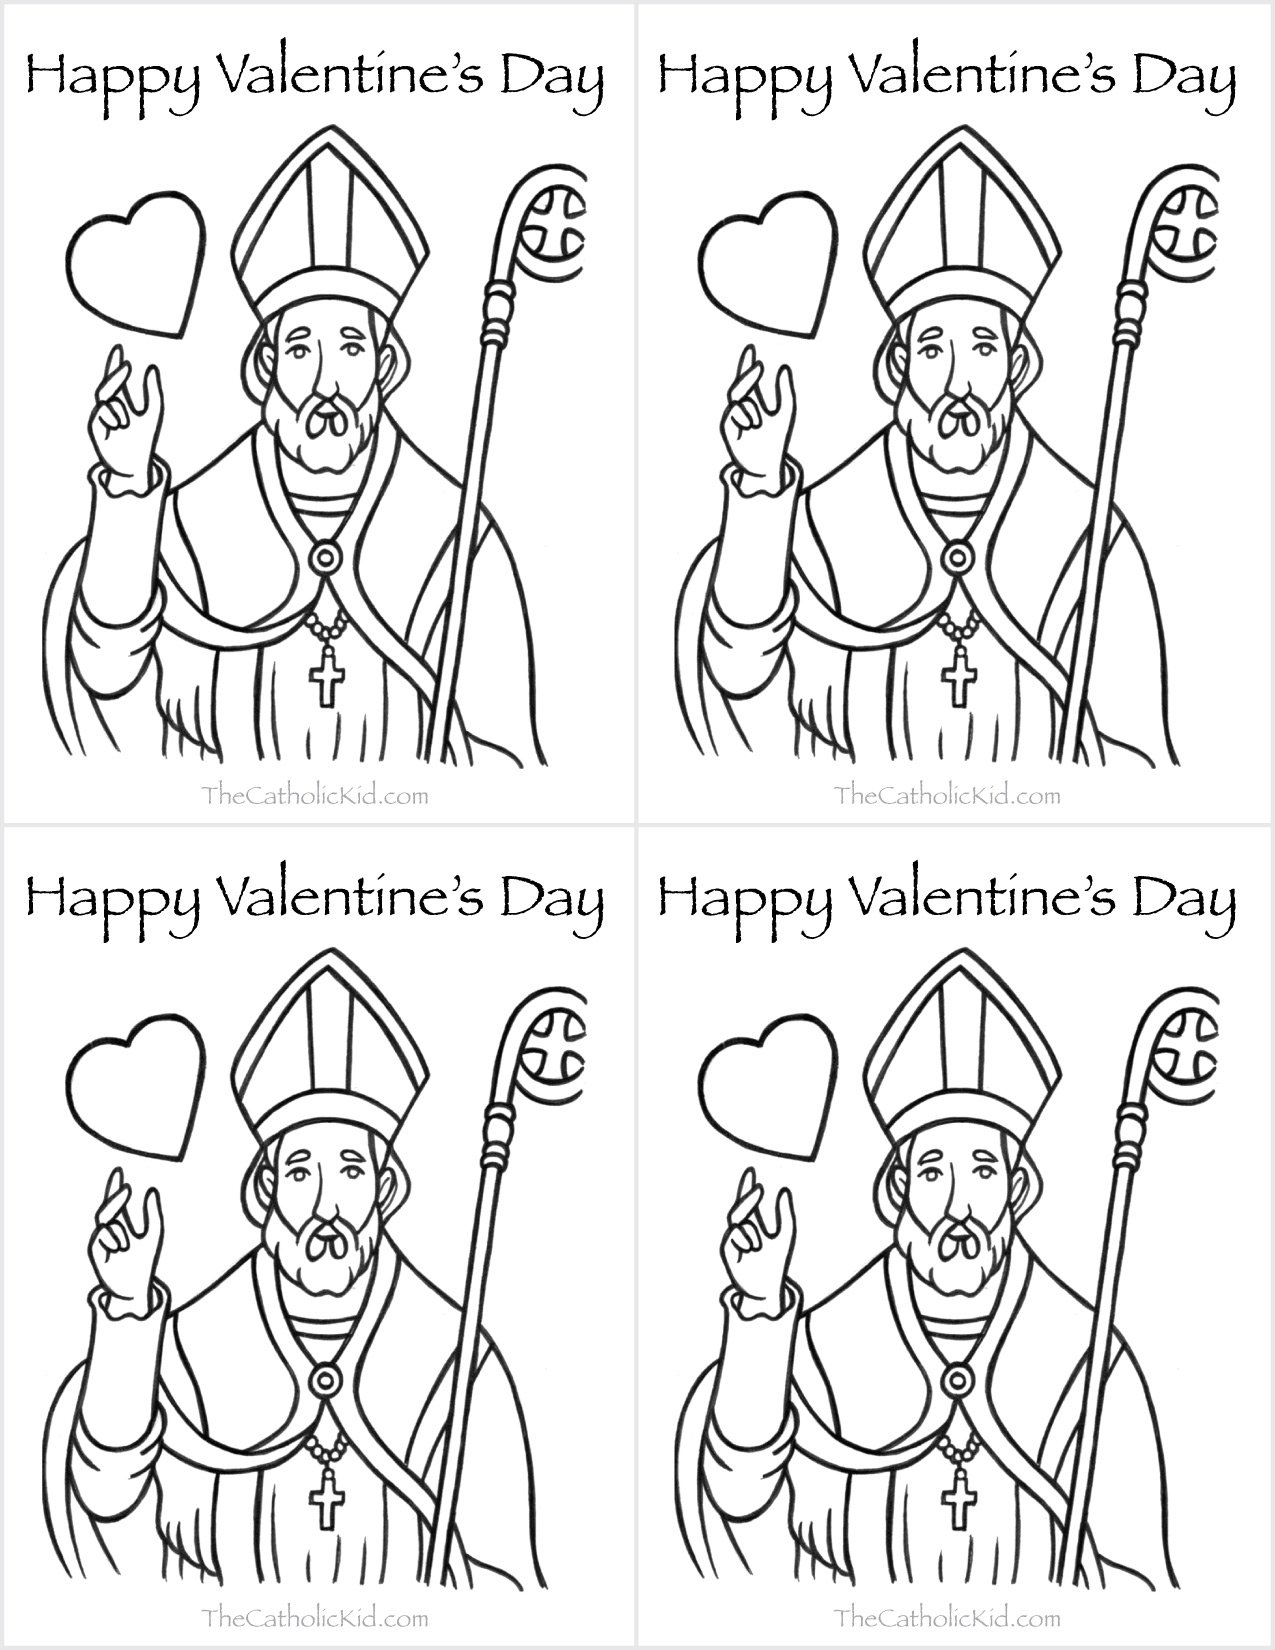 Catholic valentine 39 s day cards to color for St valentine coloring pages catholic